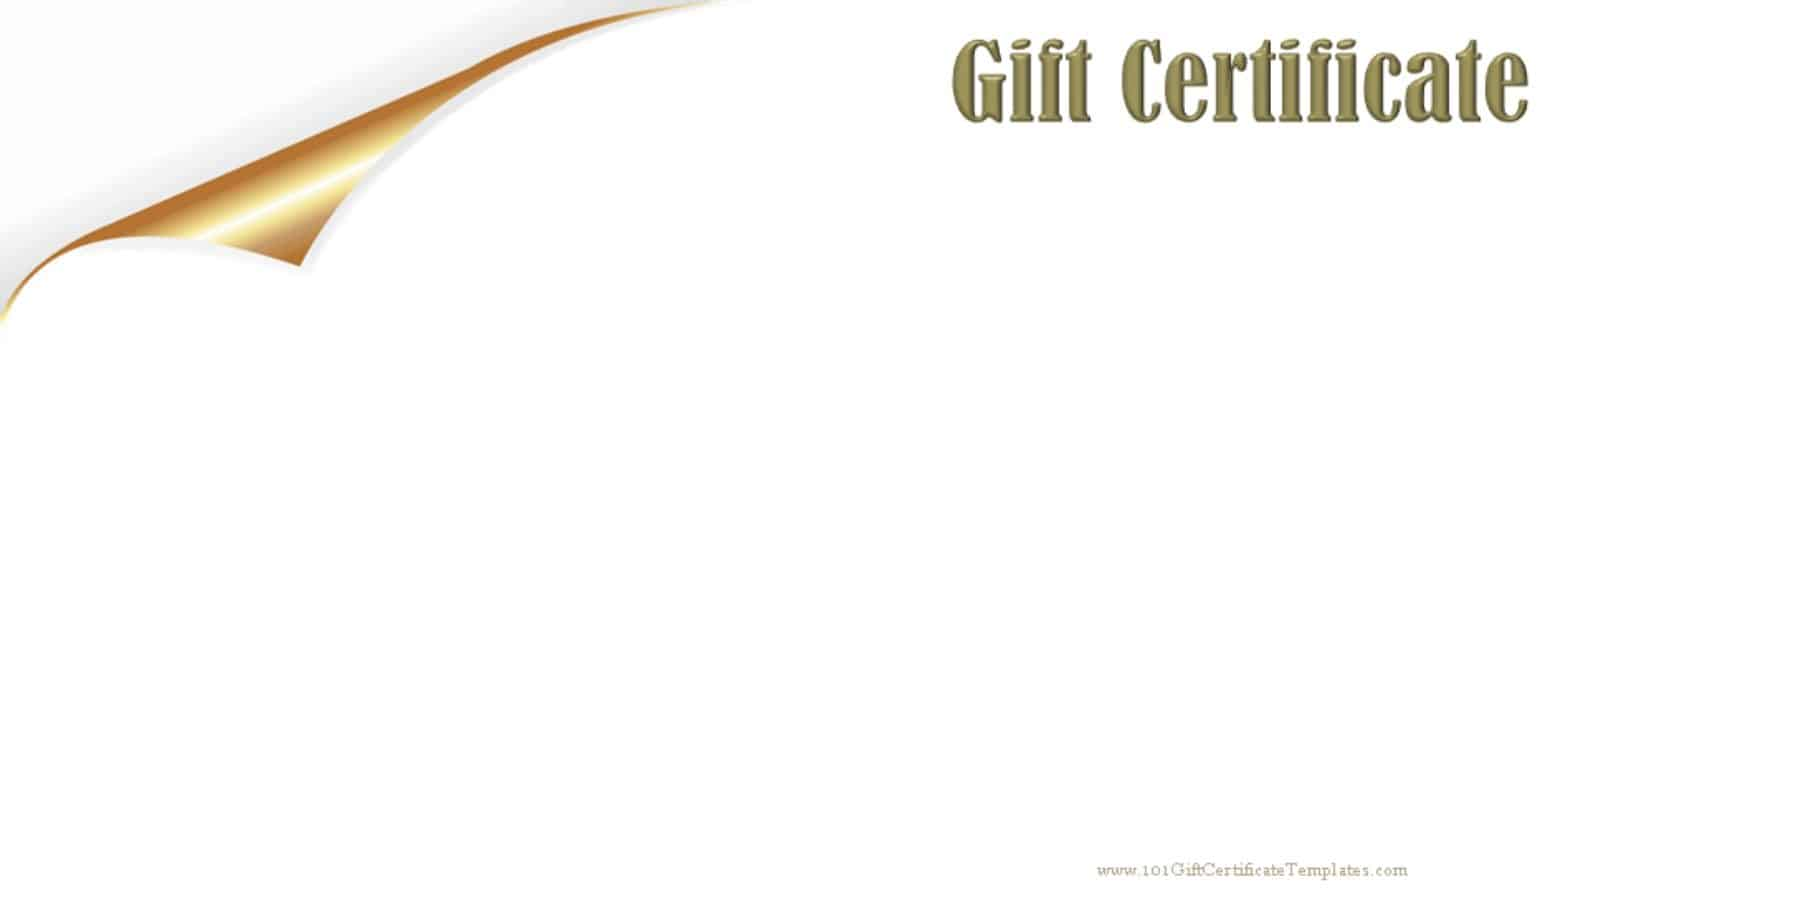 Printable gift certificate templates blank gift certificate with white background alramifo Gallery